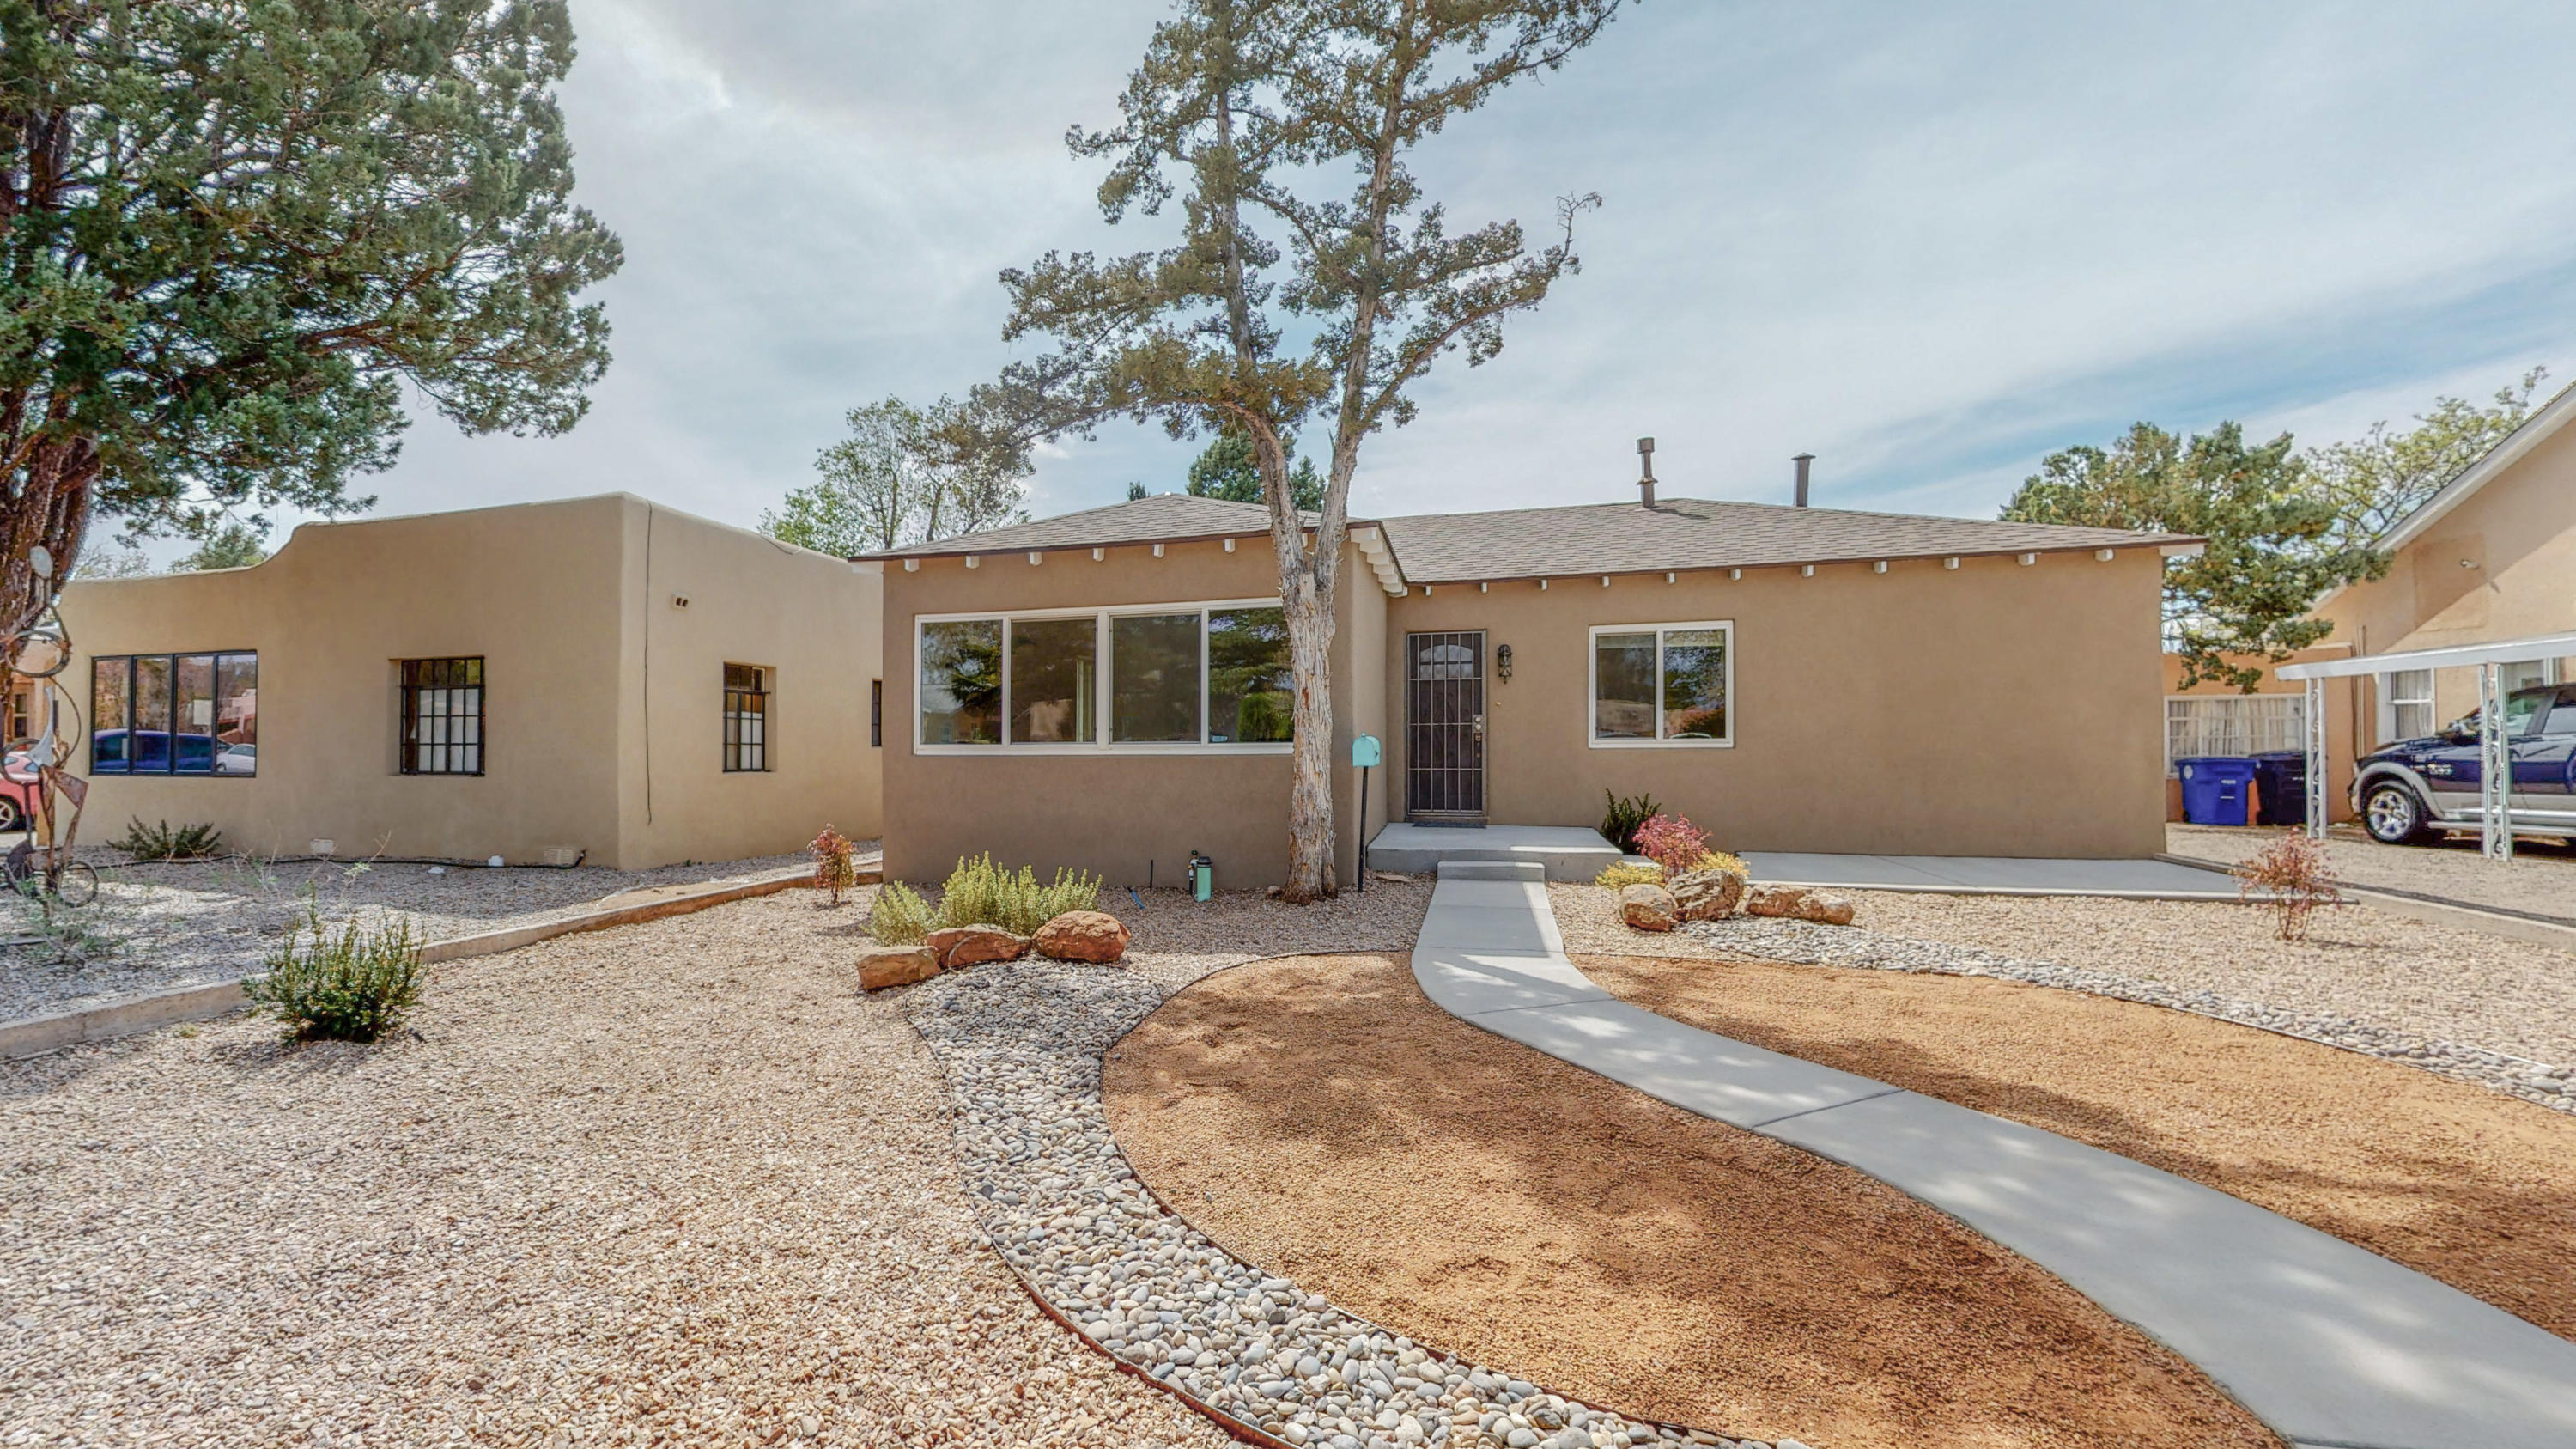 Gorgeous completely remodeled UNM Bungalow.  Walk through the door and walk back in time! Gleaming Hardwood floors, coved ceilings, built-in cabinetry. Charming Kitchen with stainless appliances, new quartz countertops, farmhouse sink and new fixtures, Roof replaced 2/2020, New H2O heater, new furnace and refrigerated air, new stucco, new windows, new front exterior door, original interior doors stripped to show their beauty and original hard ware, sliding repurposed barn doors, new bathrooms, freshly landscaped.  All you have to do is unpack.